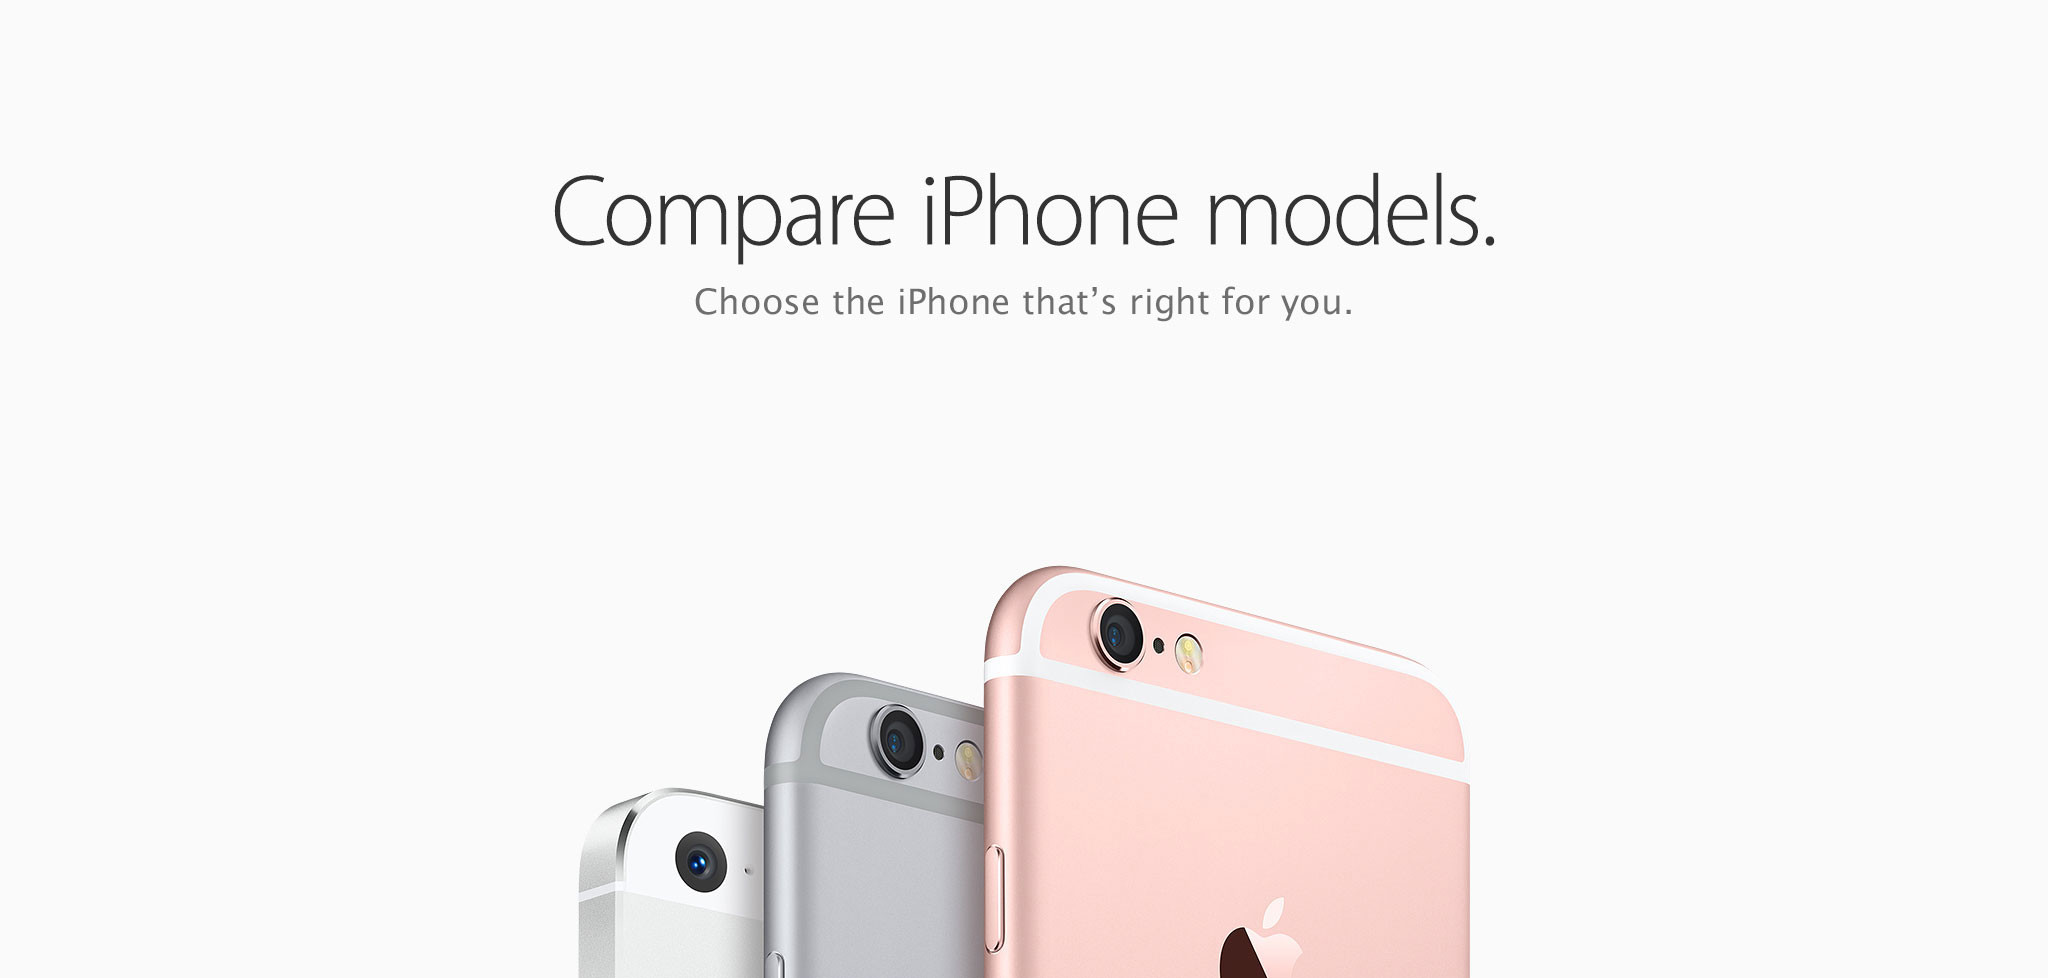 Compare iPhone models. Choose the iPhone that's right for you.